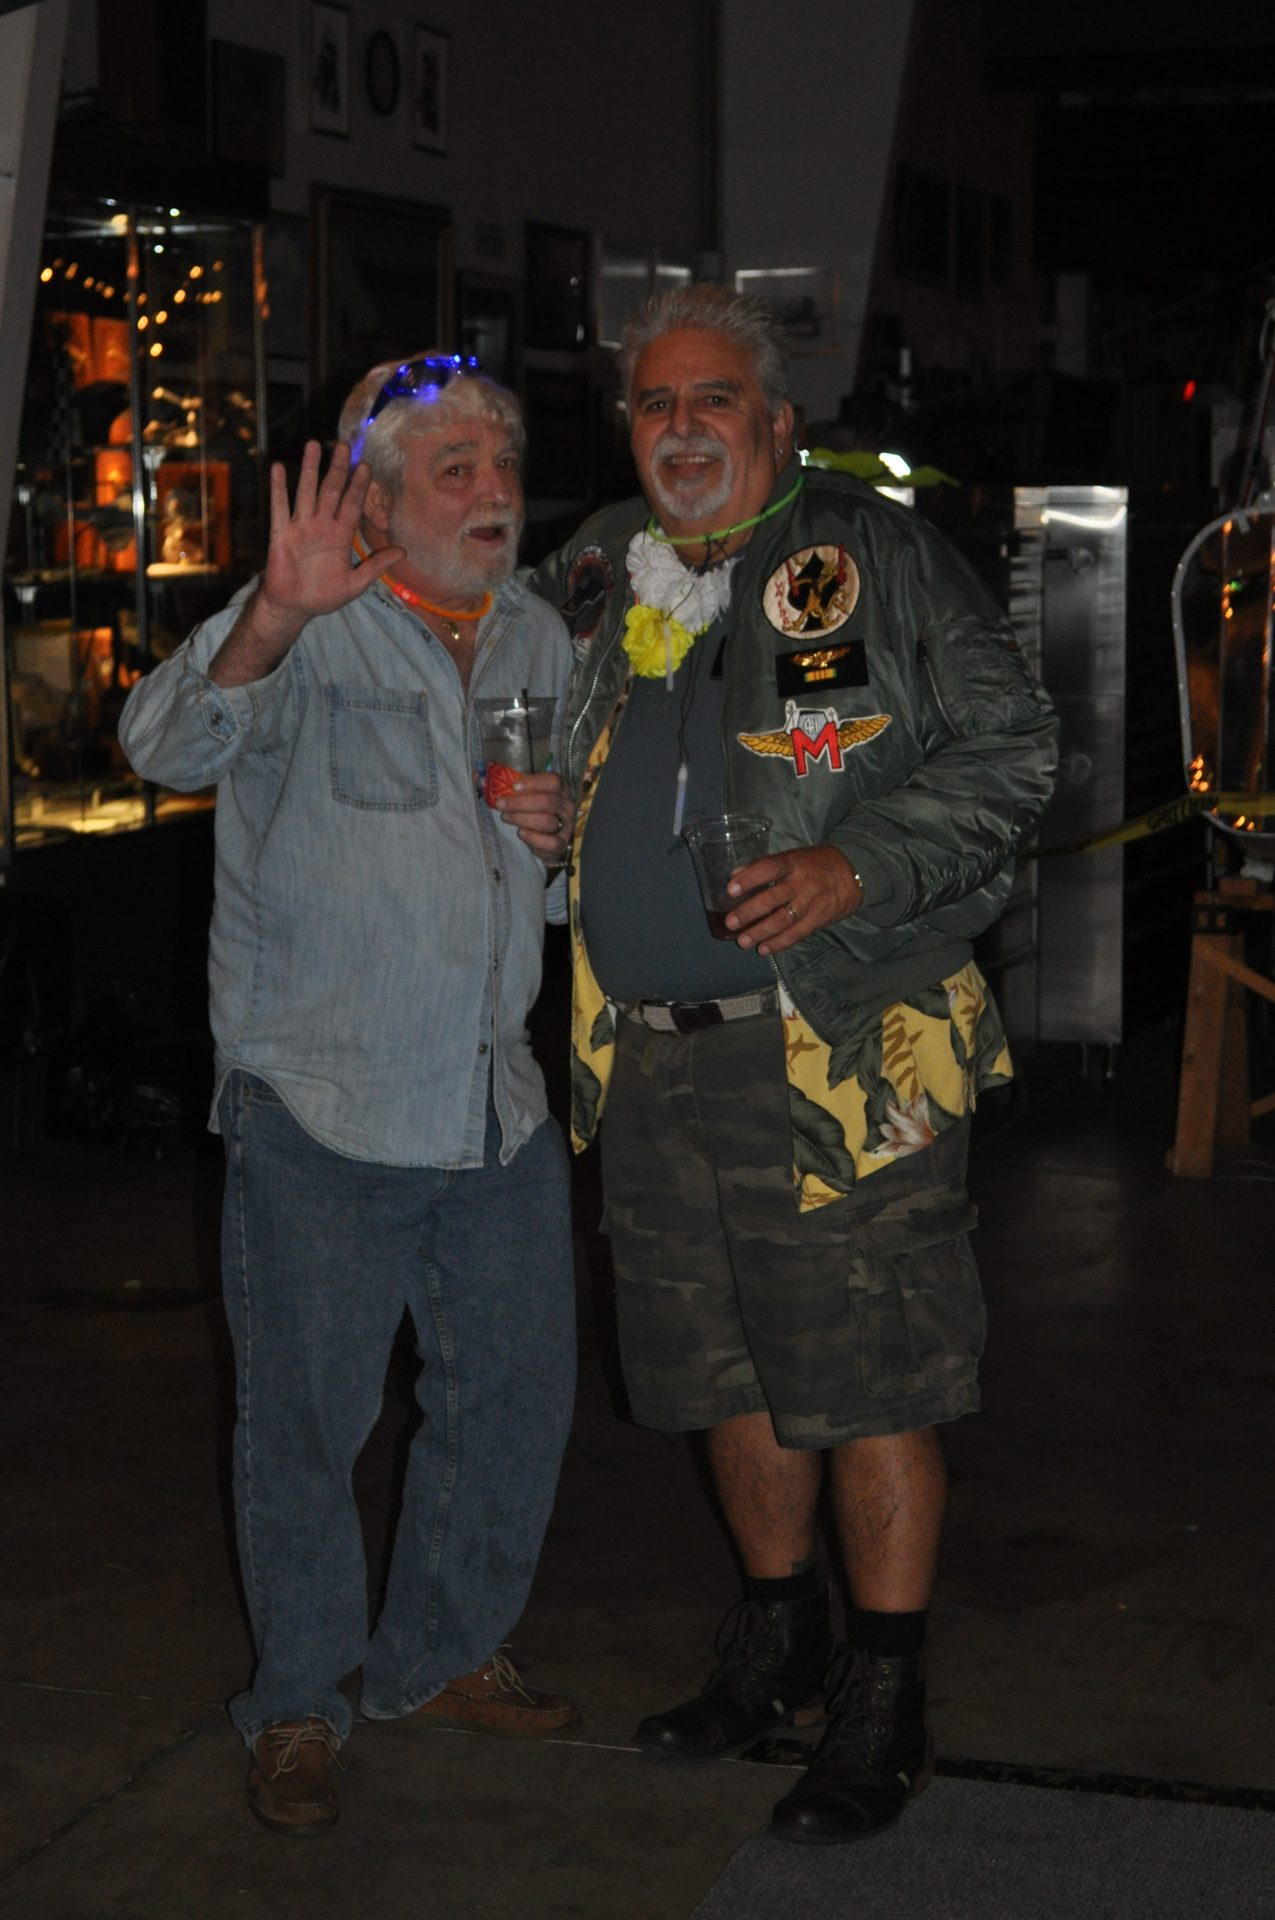 Holding court with Barnacle Bill at the MASH Hangar party clearly trying to convince someone he didn't do it!